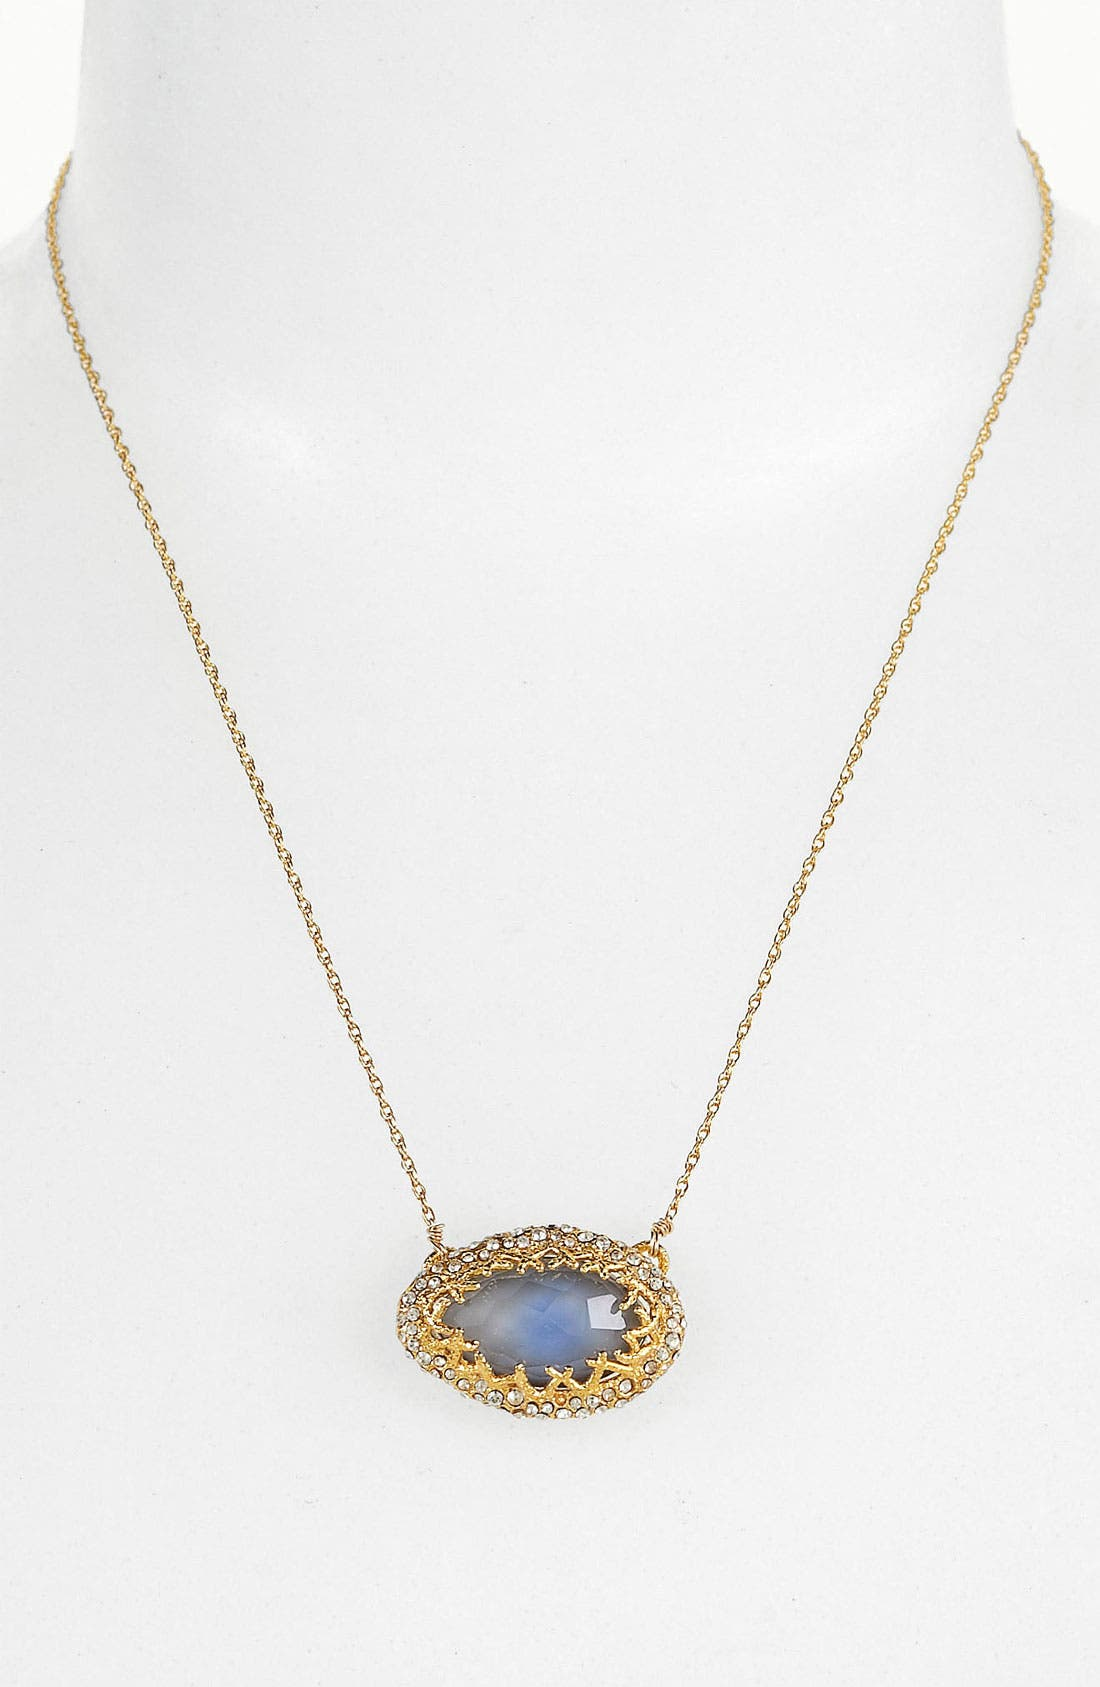 Alternate Image 1 Selected - Alexis Bittar 'Elements' Pendant Necklace (Nordstrom Exclusive)